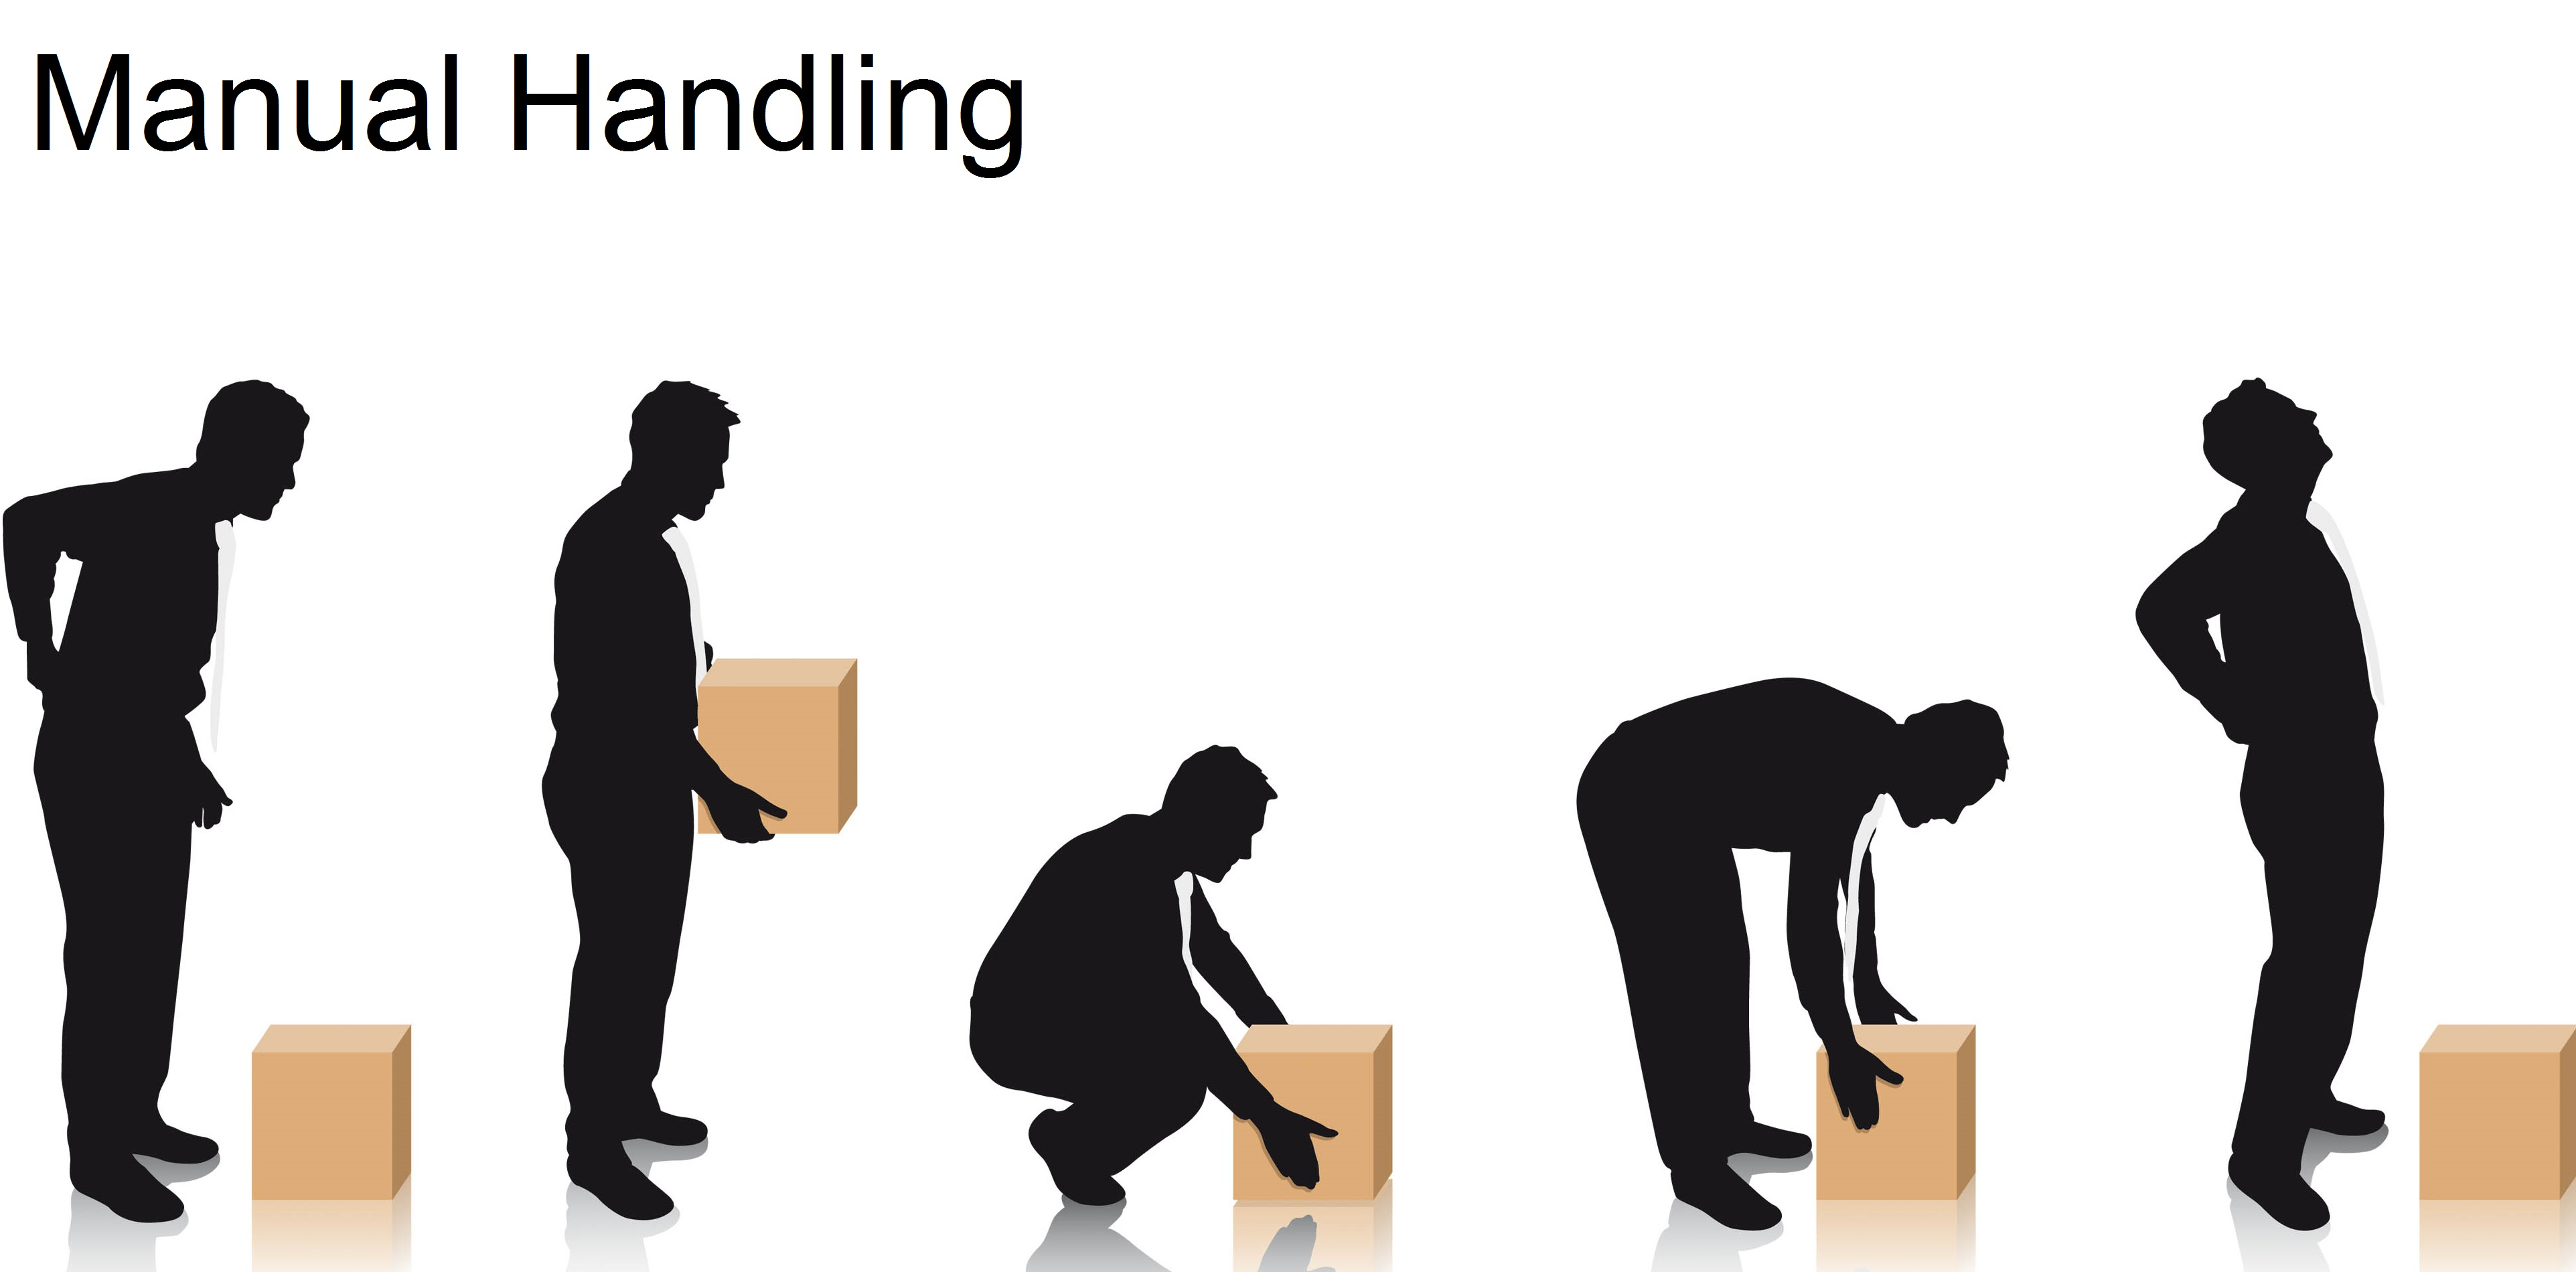 What are four principles of manual handling back care ...